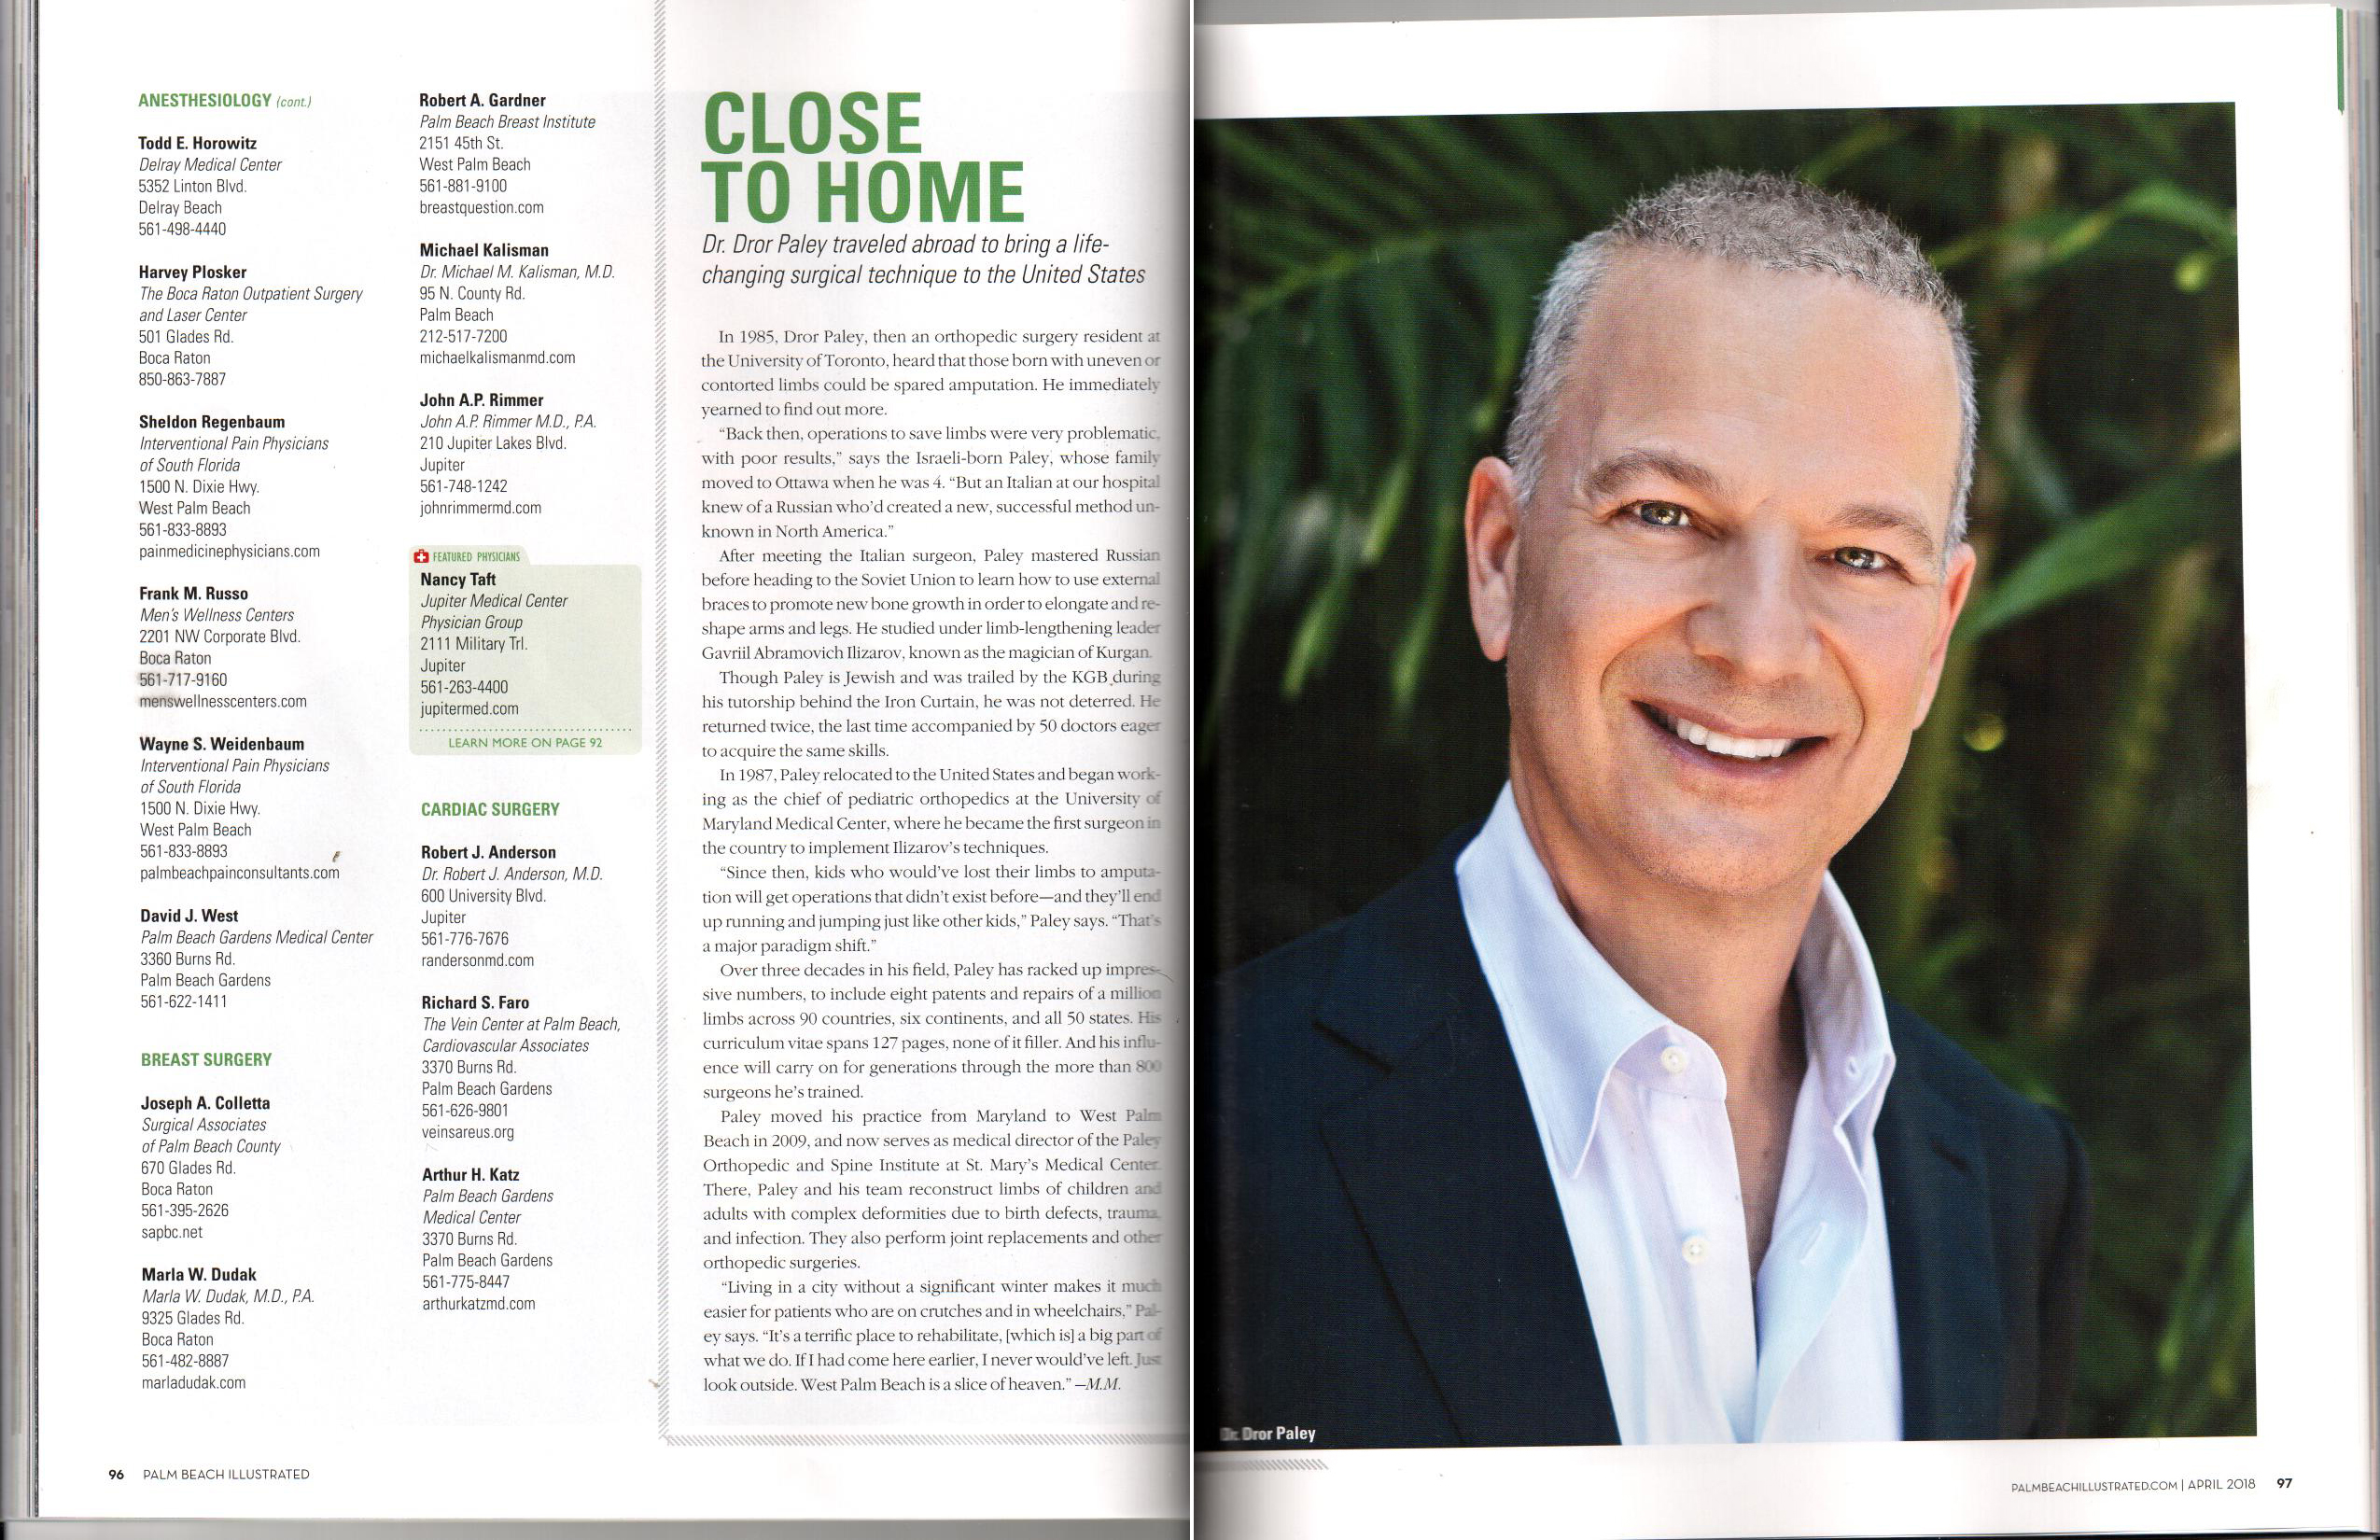 Dr. Paley on the Palm Beach Illustrated